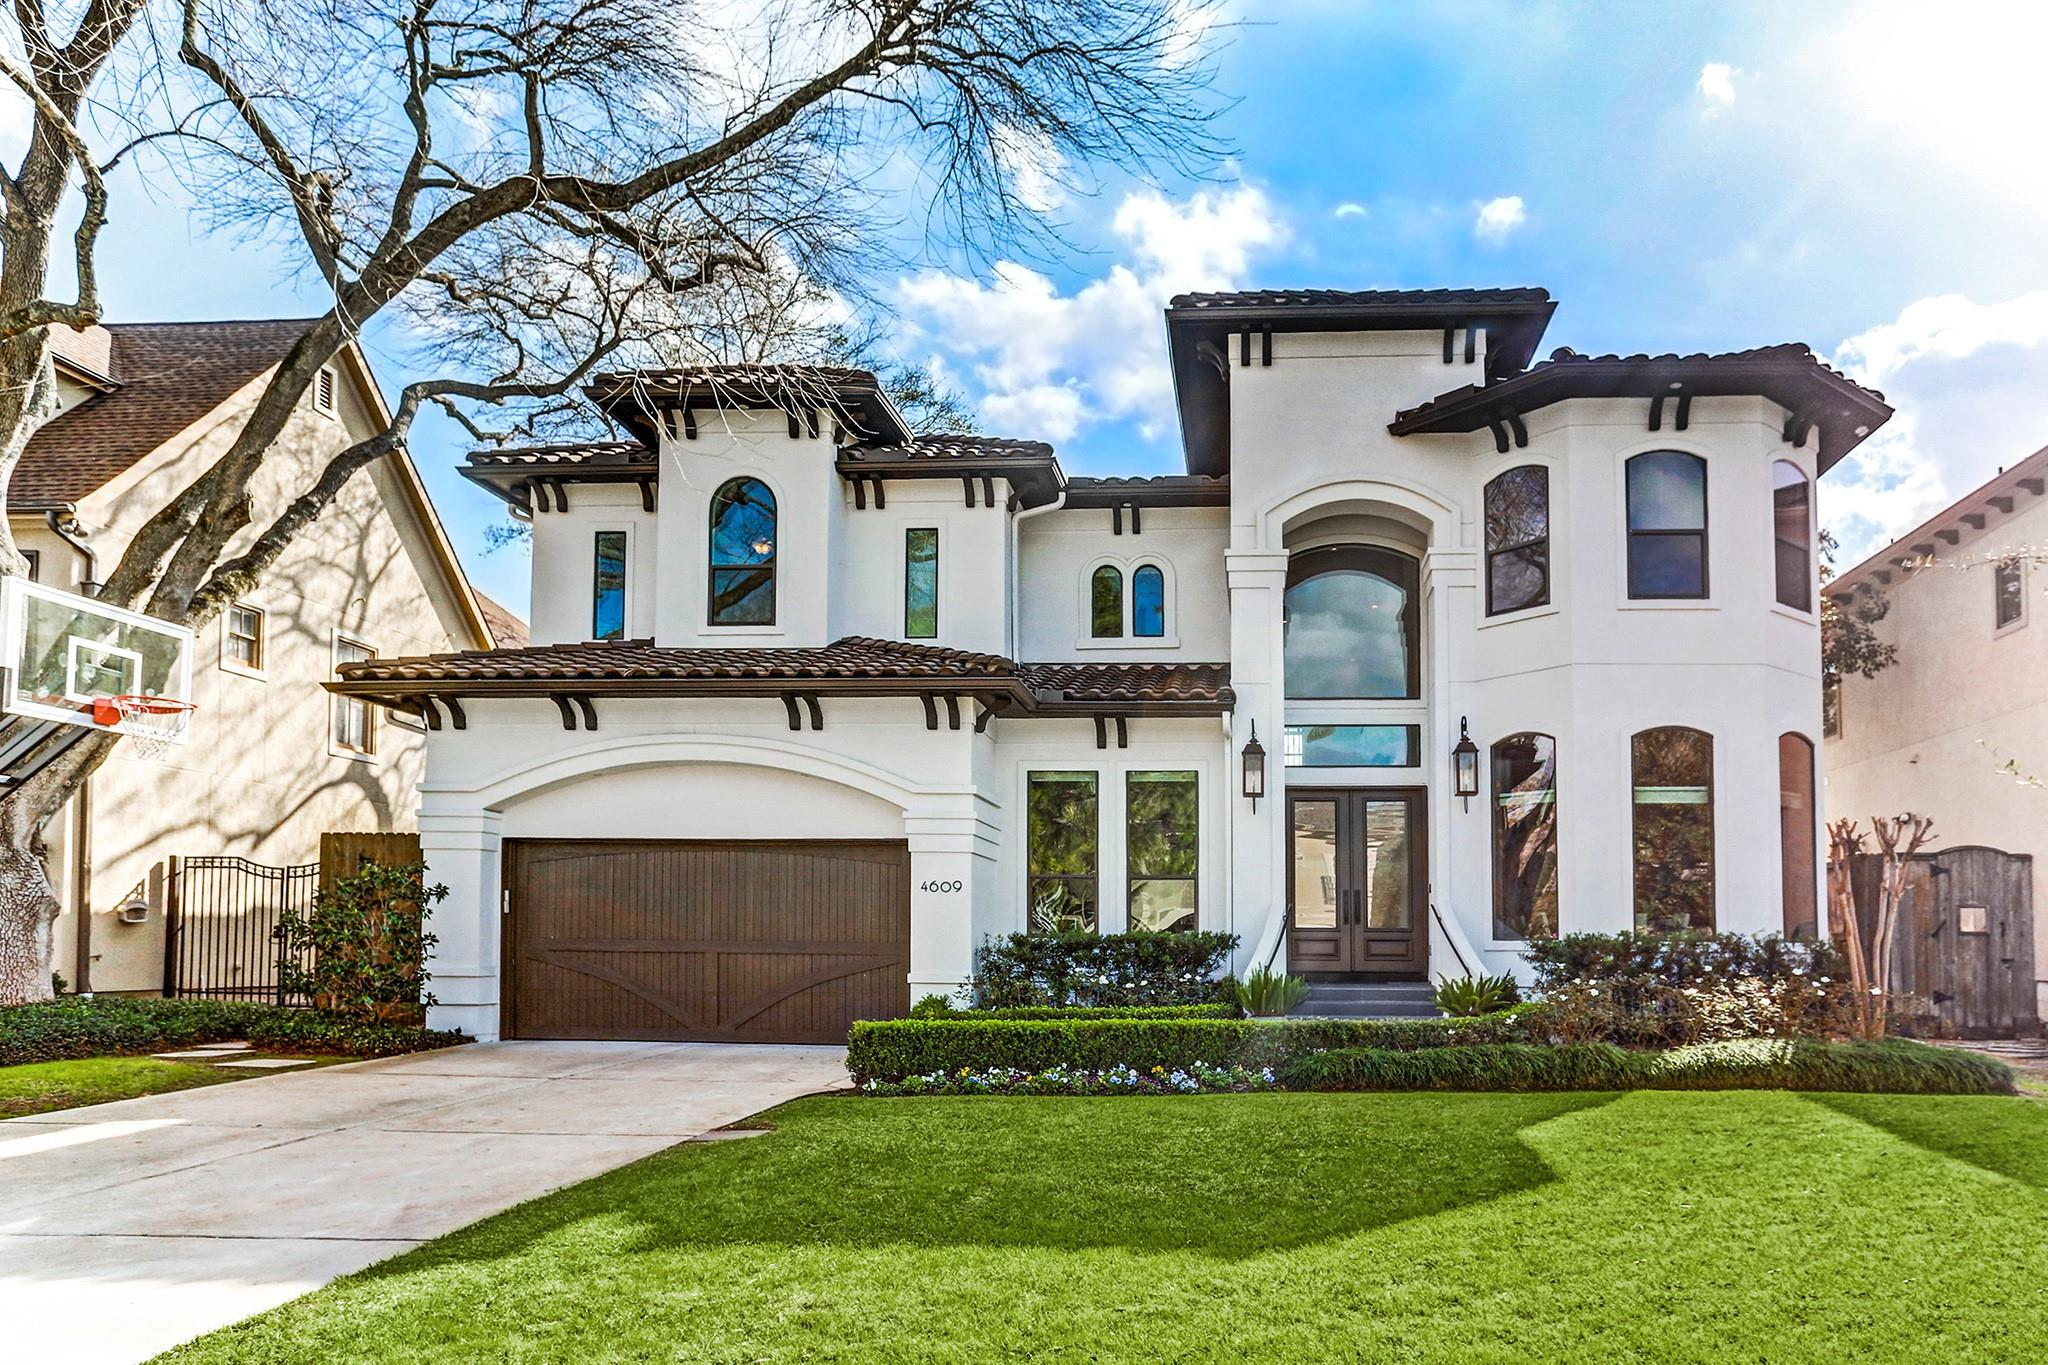 4609 Holt Street Property Photo - Bellaire, TX real estate listing